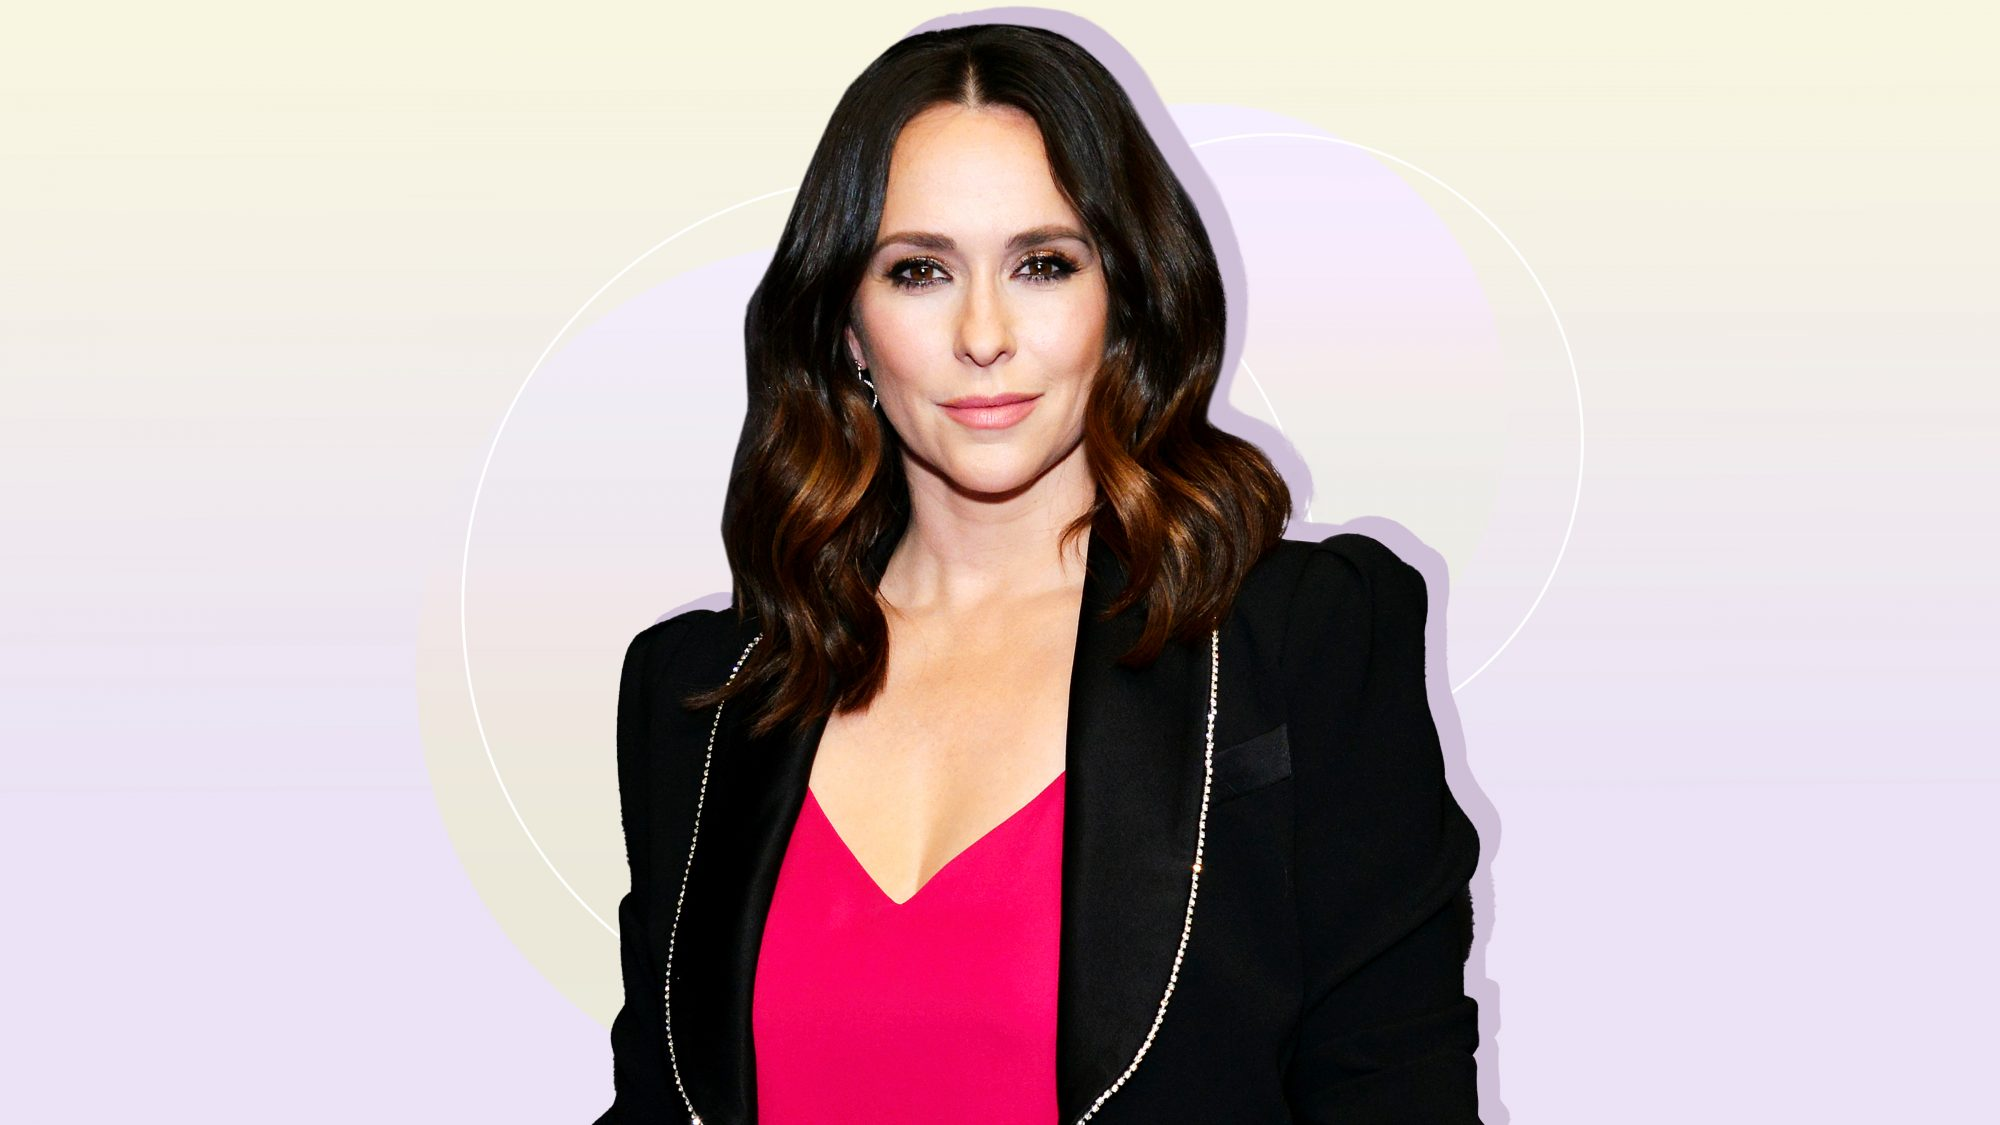 Jennifer-Love-Hewitt-Trying-to-Reset-While-Feeling-Like-I'm-Not-Enough-After-Birth-of-Baby-GettyImages-1136499678